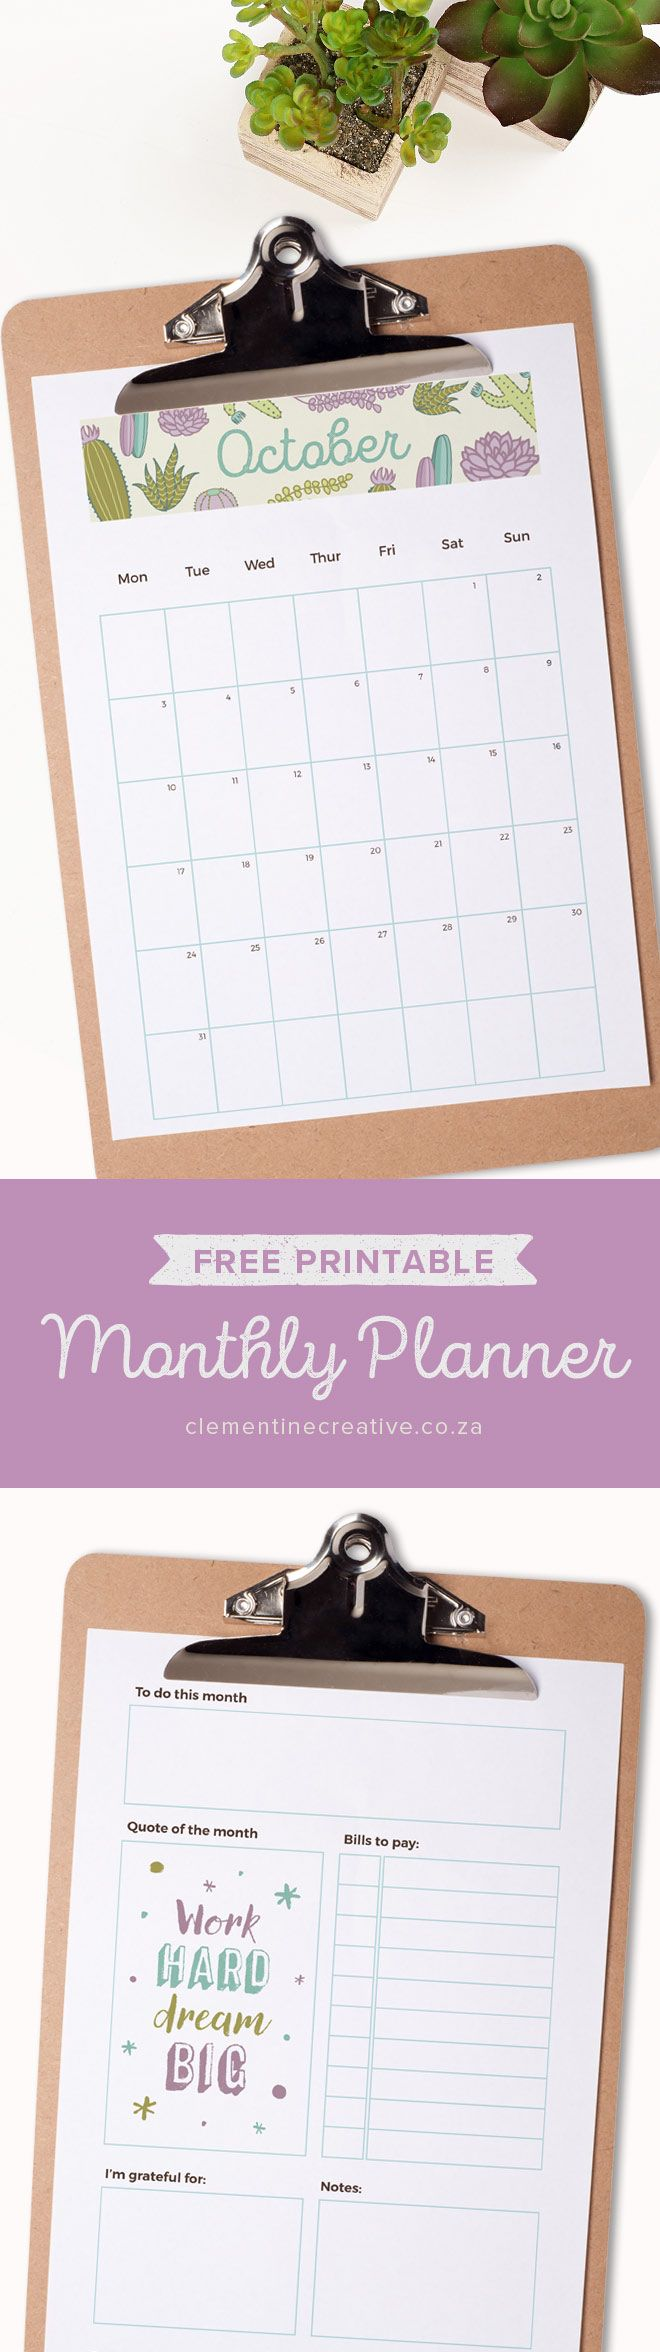 Get a new free printable monthly planner every month to insert in your kikki.K, Filofax or larger binder. Get October's calendar/planner here.